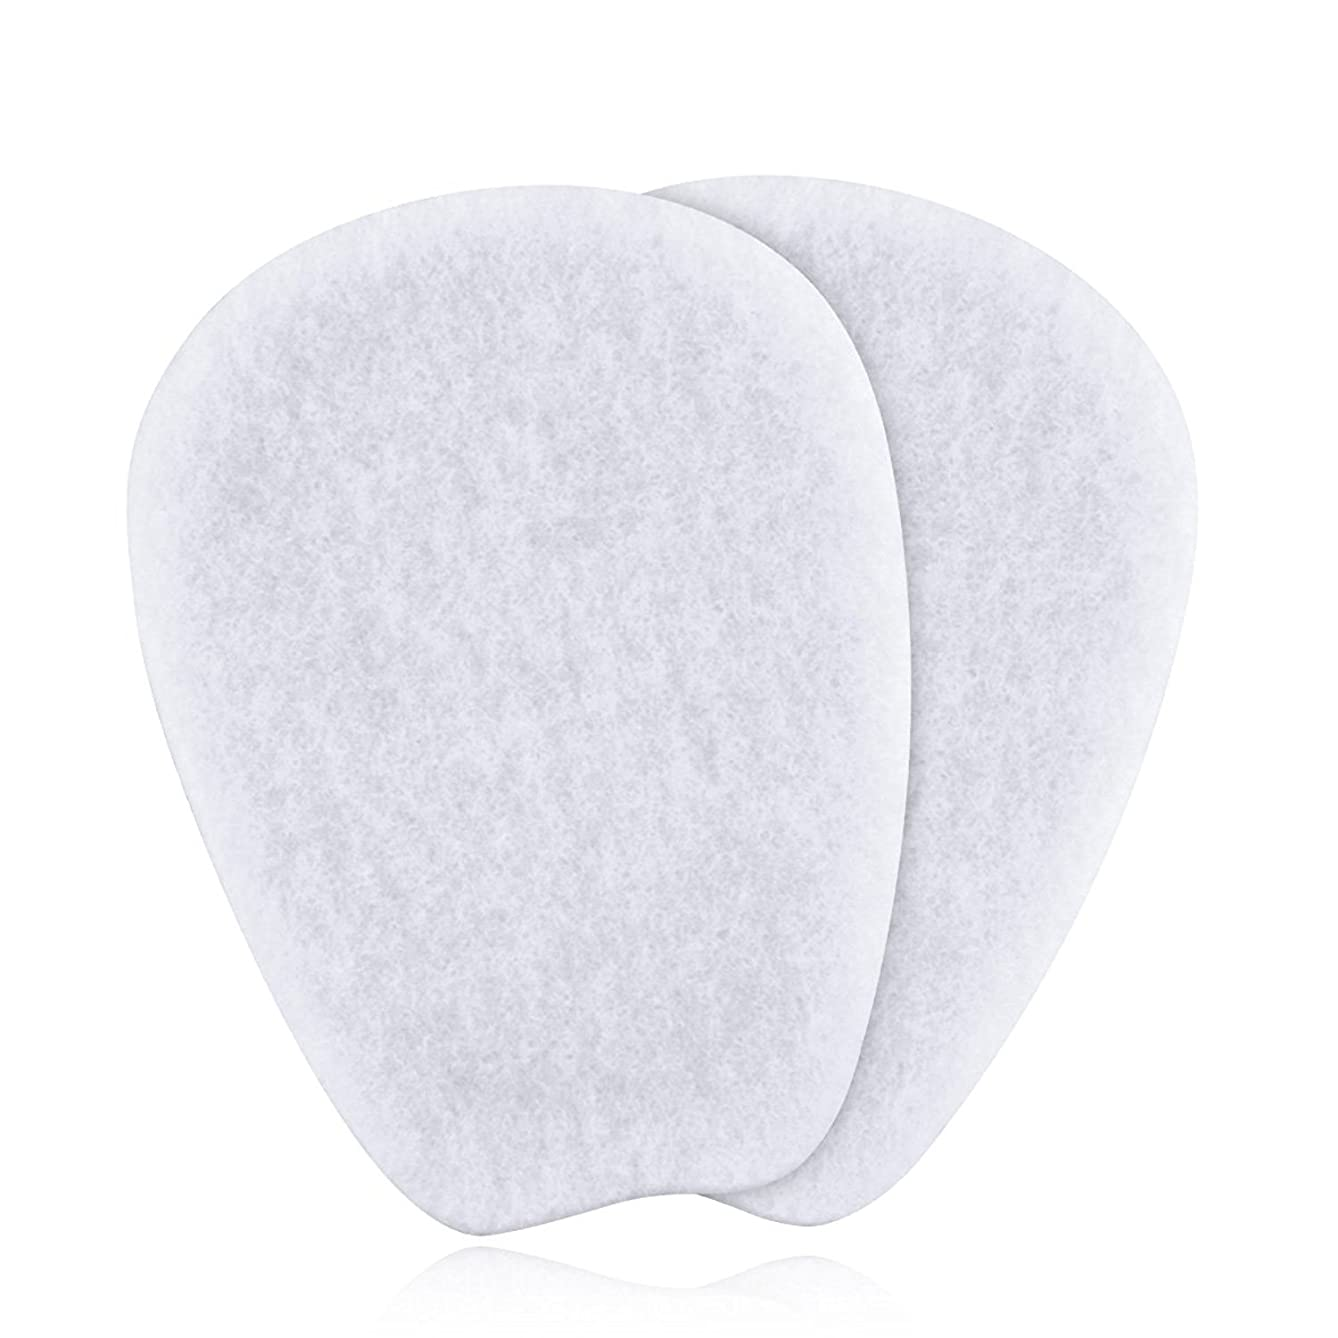 Liams Shoppe 7 Pairs of Felt Tongue Pads Cushion for Shoes, Size Extra Large